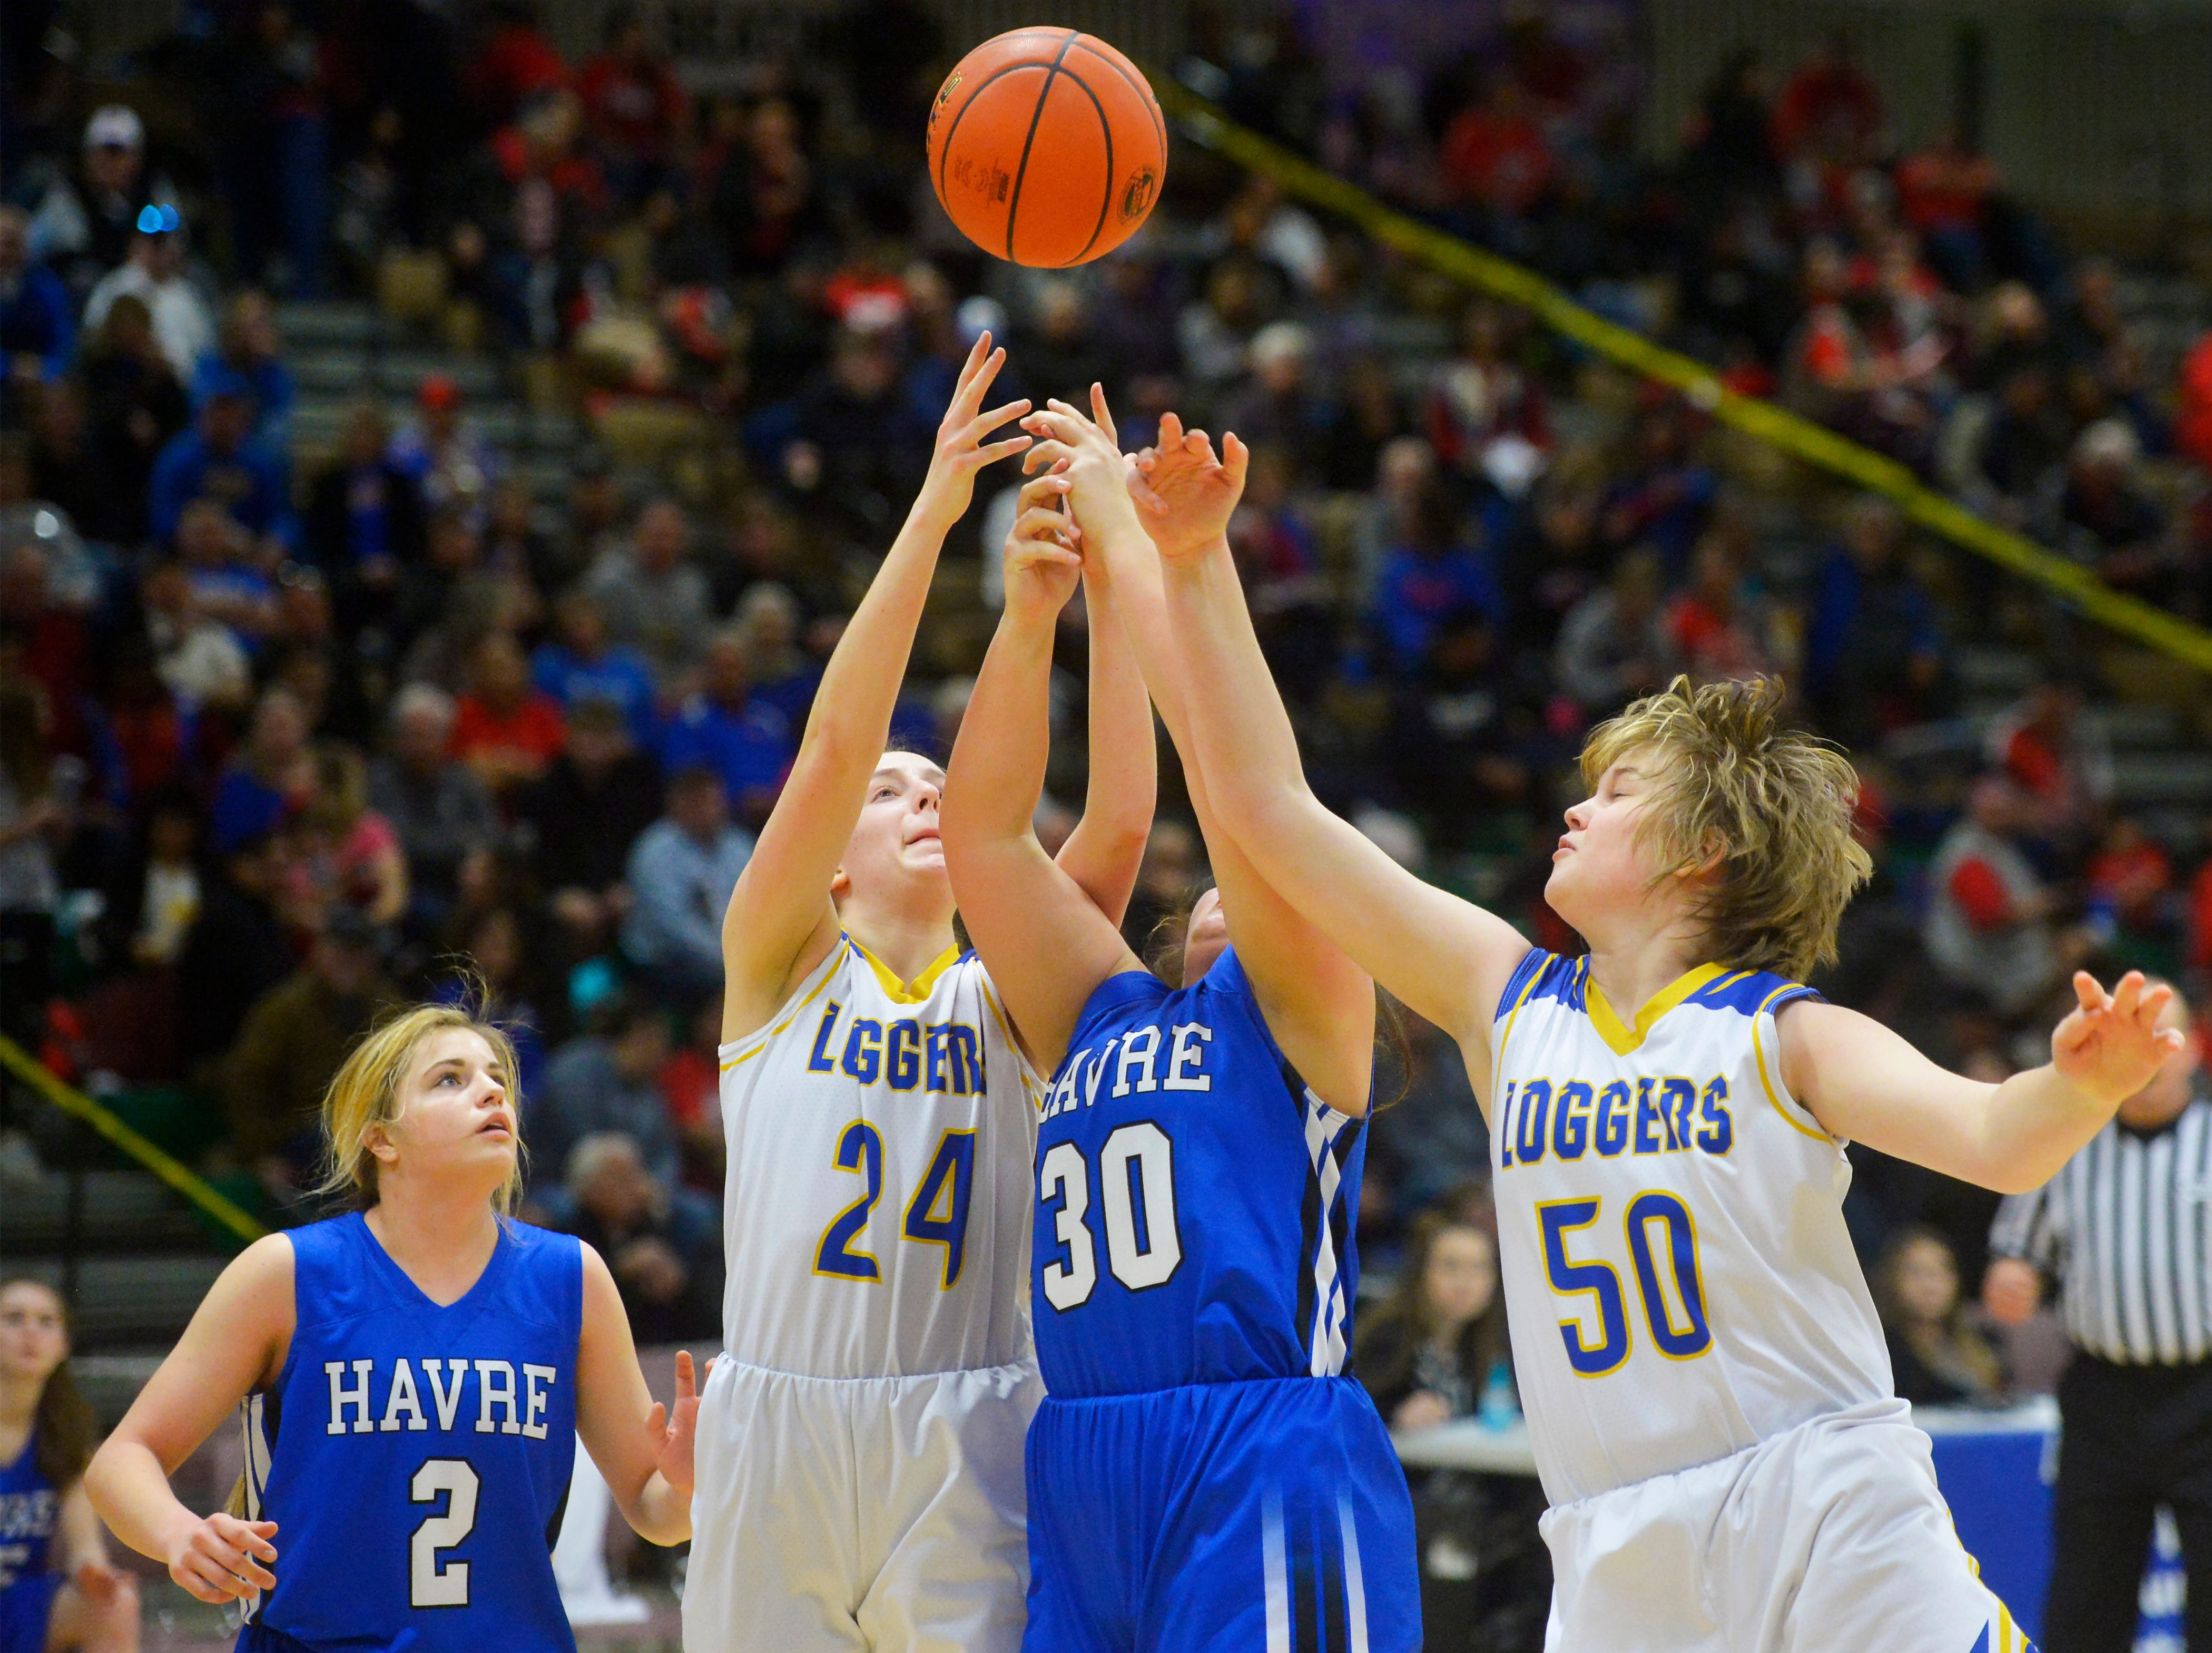 Havre and Libby play in the Class A Girls State Basketball Tournament on Thursday in the Four Seasons Arena.